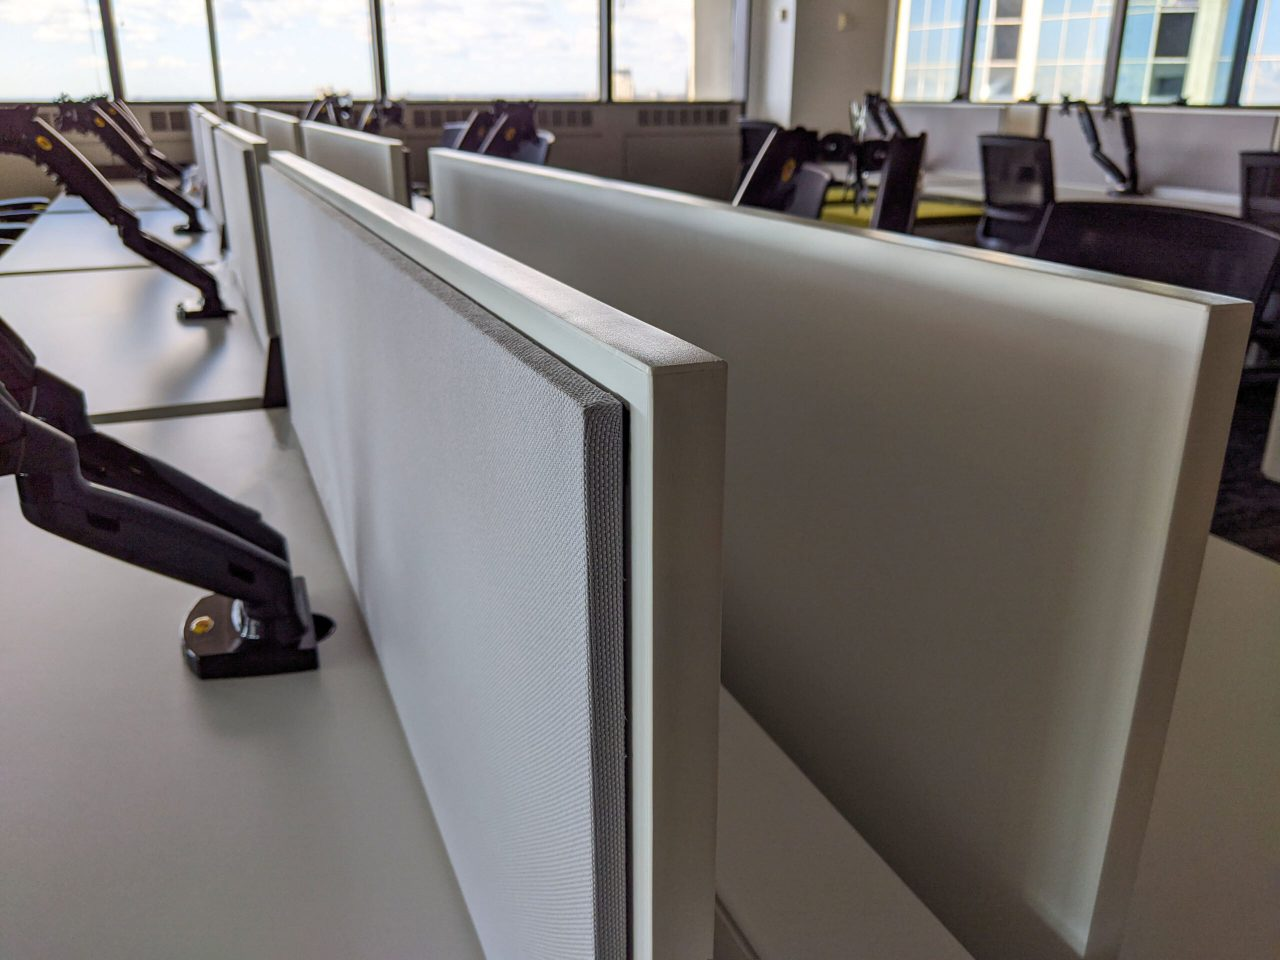 Screens on Sit-Stand Benching